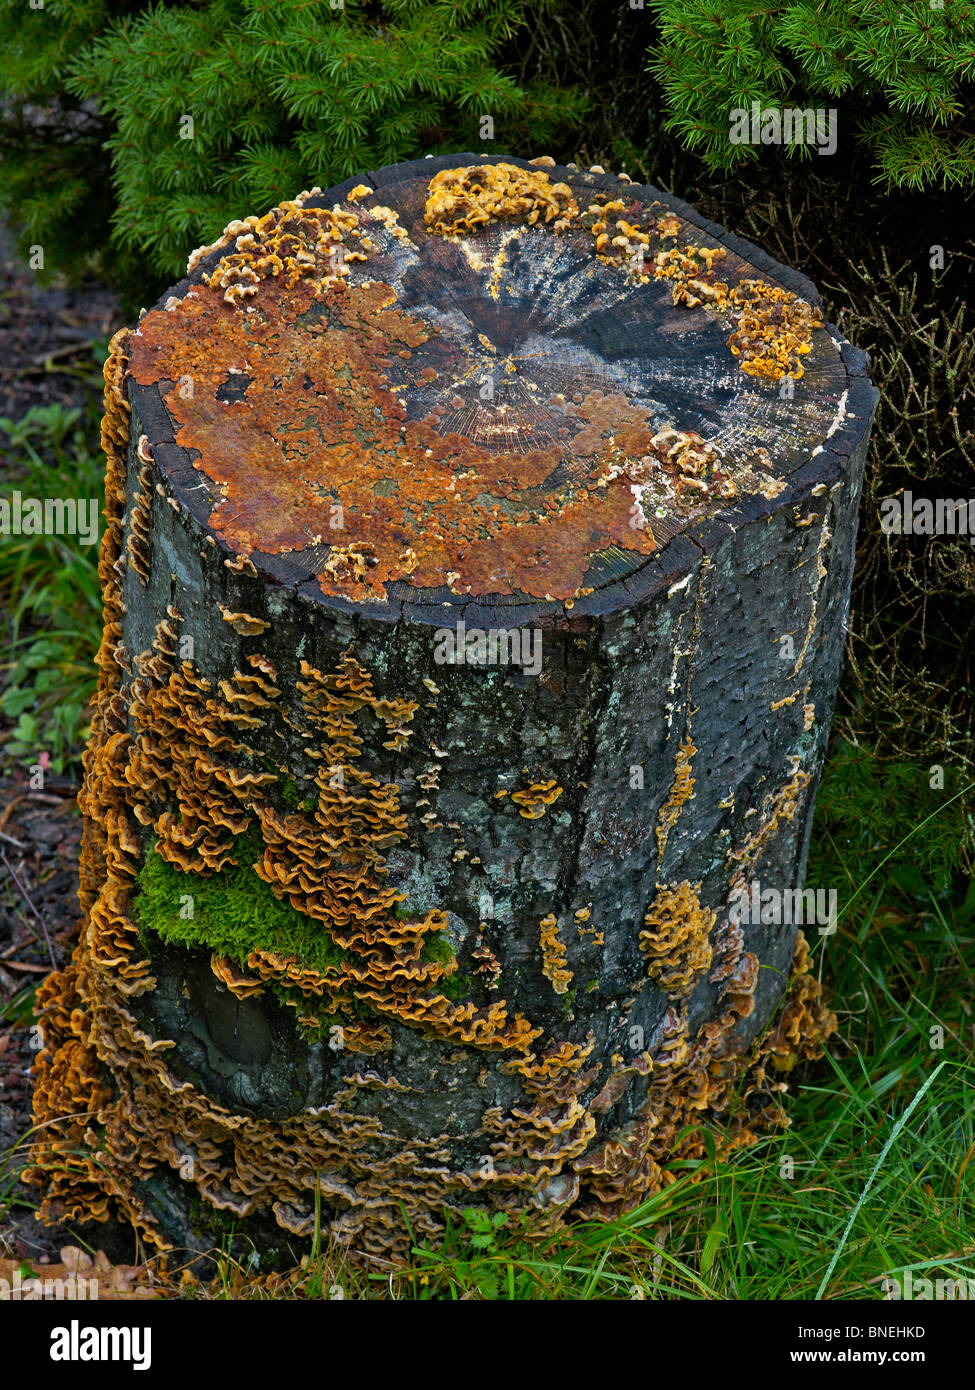 Fungi and moss covered tree stump - Stock Image